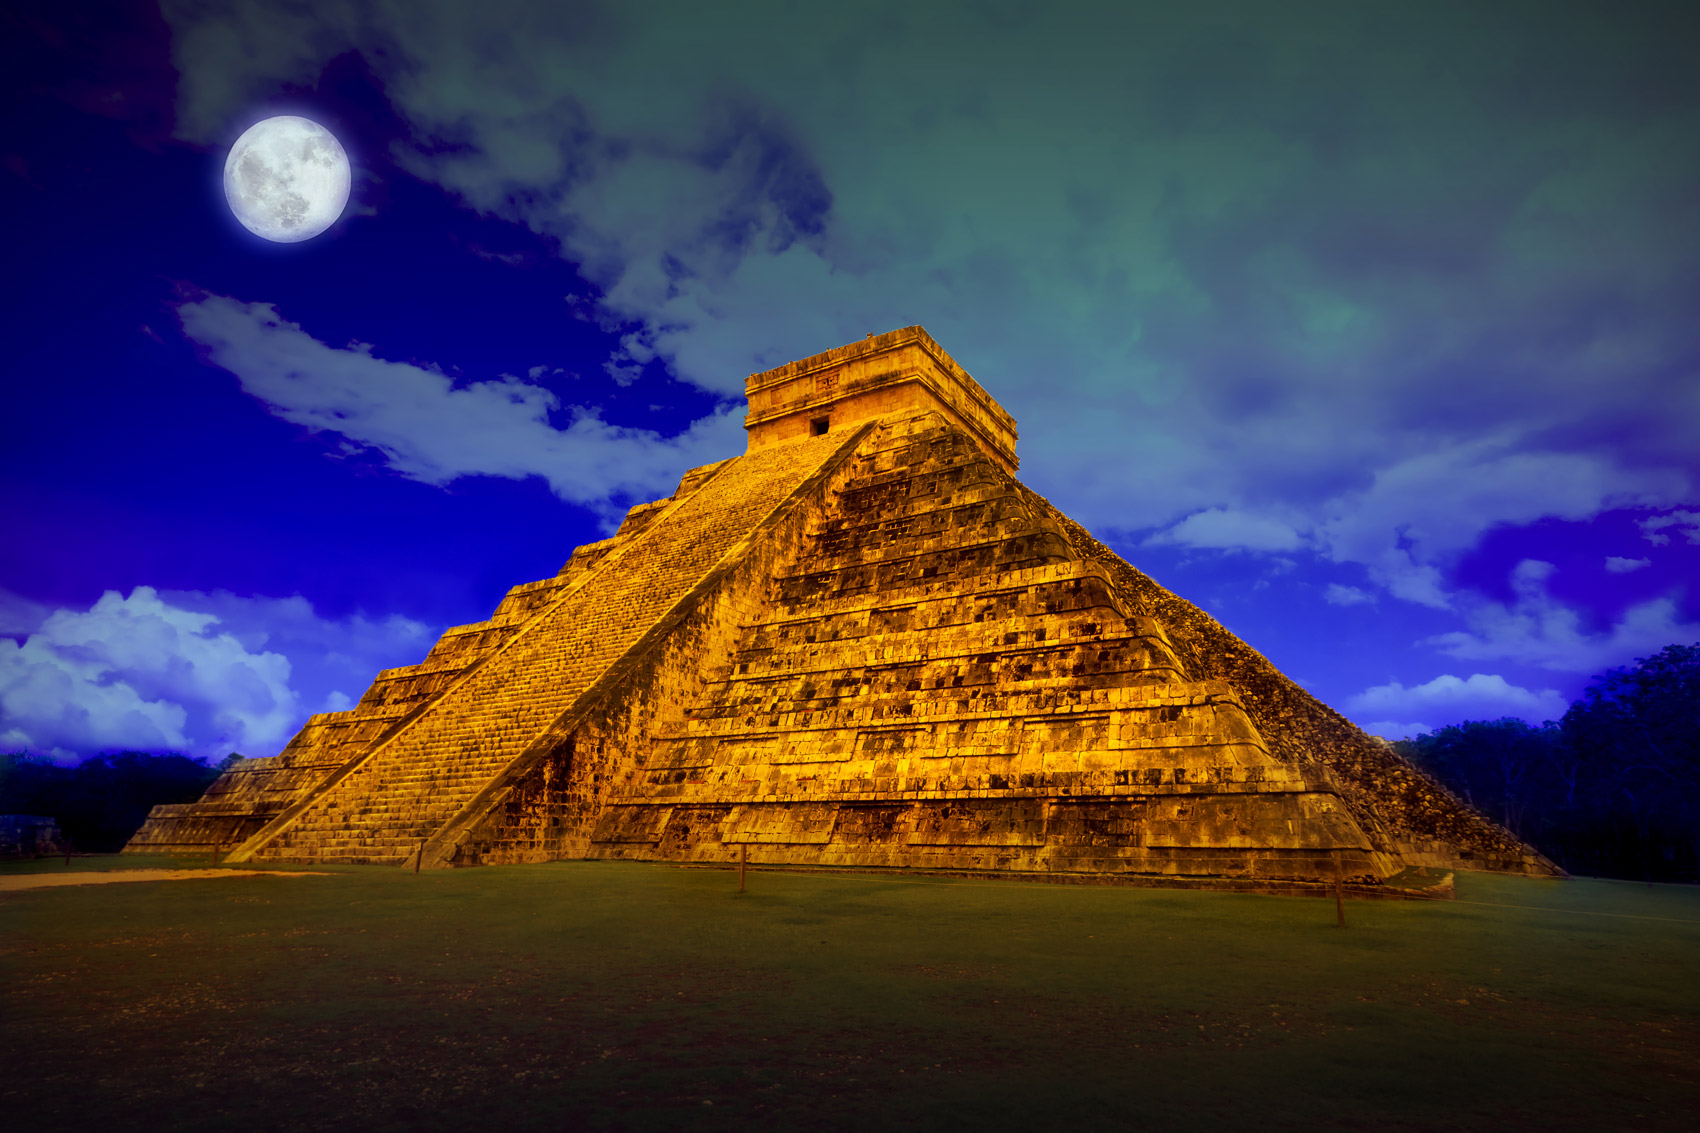 Mexico's most famous archaeological site